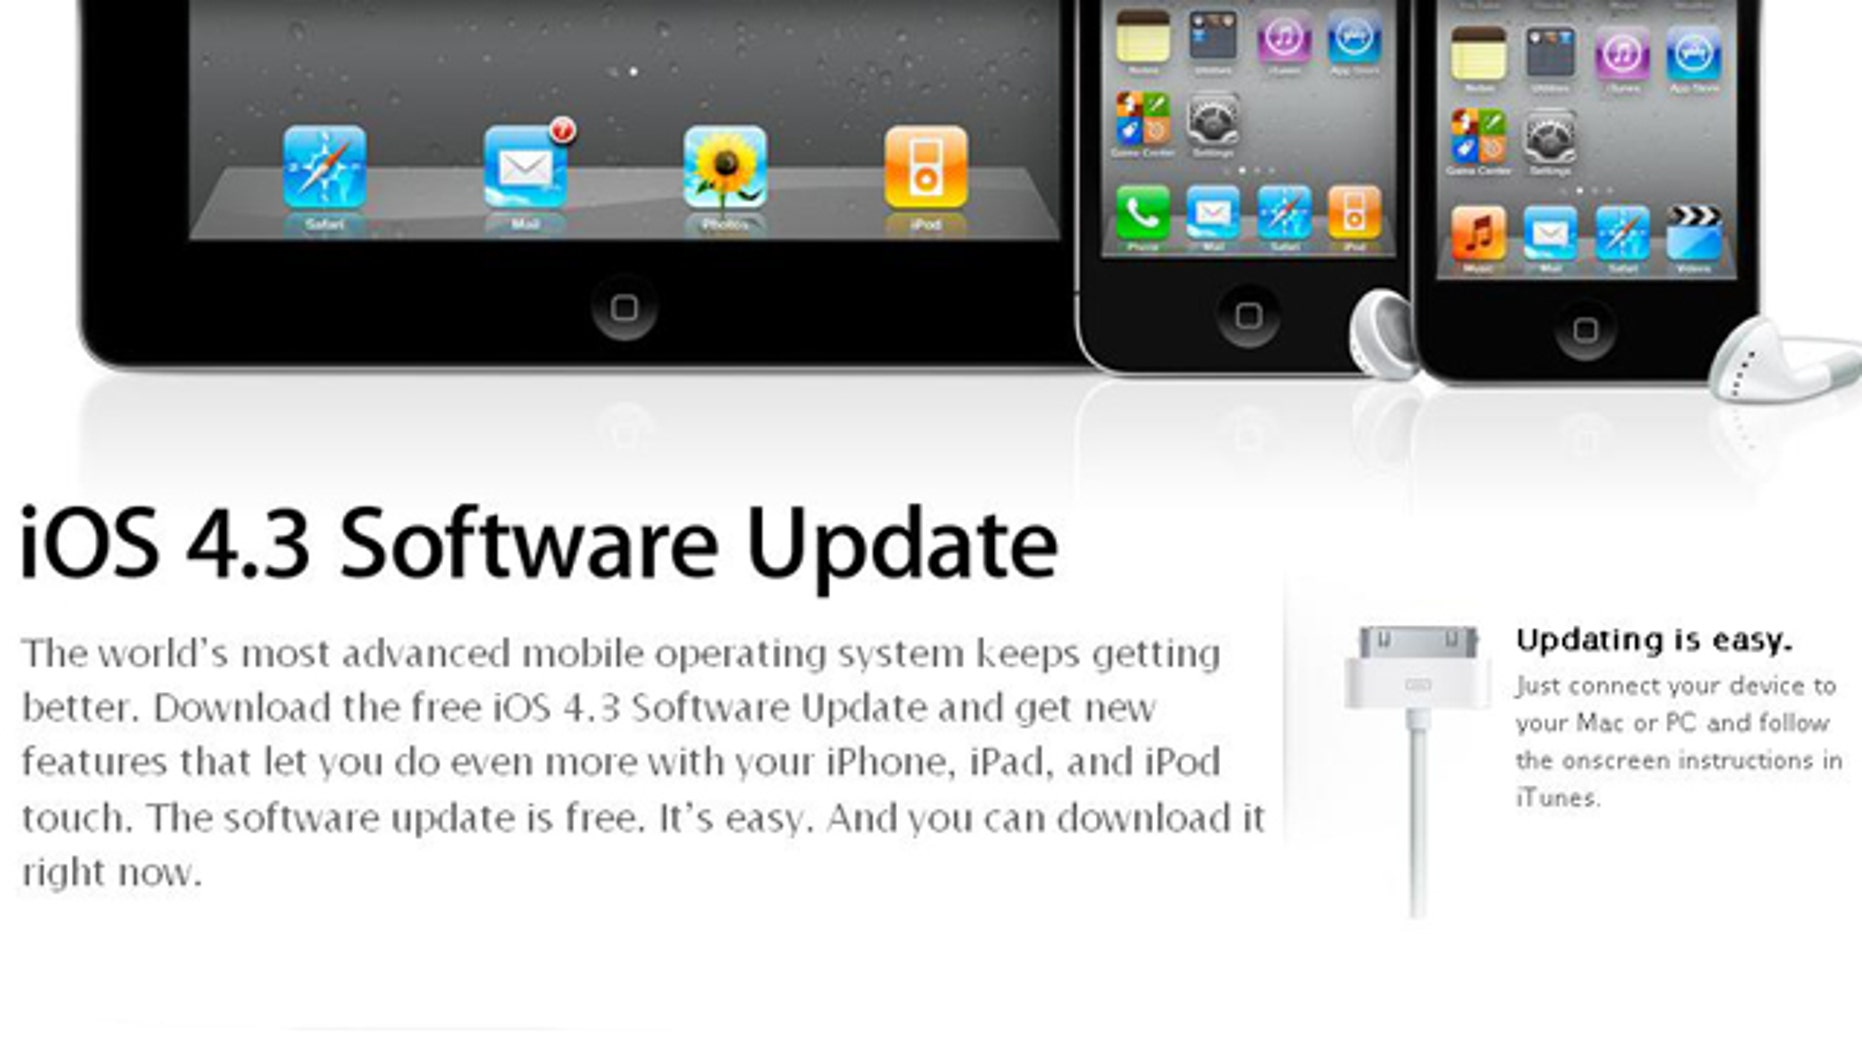 Apple Releases iOS 4.3 update for iPhones, iPads and iPods -- a free update that adds new features and boosts performance, the company said.